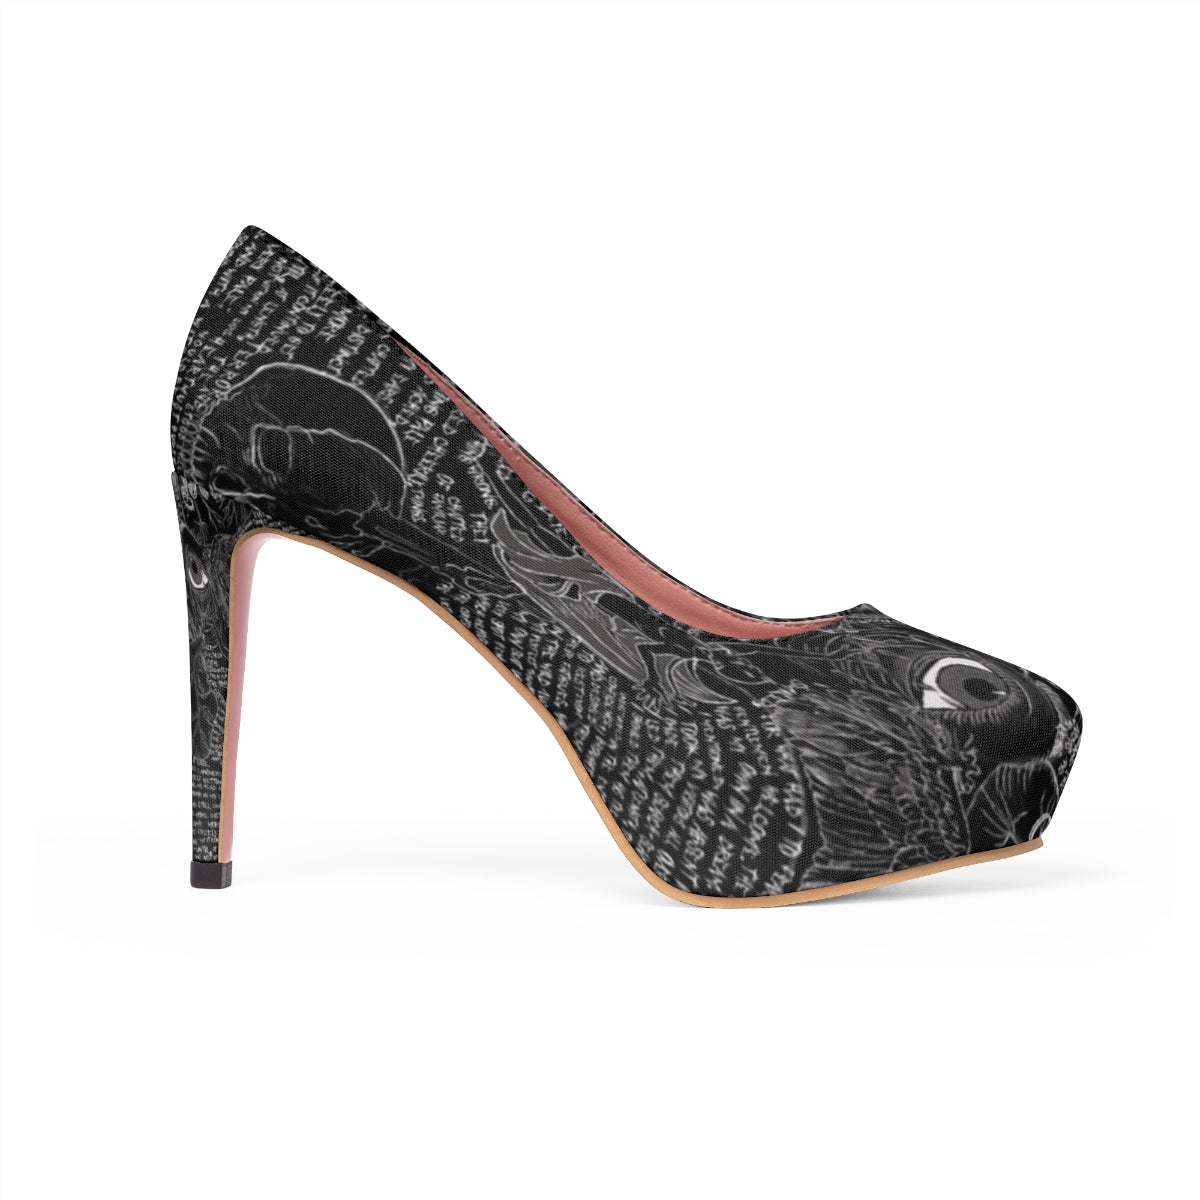 The Tell-Tale Heart Stiletto Pumps